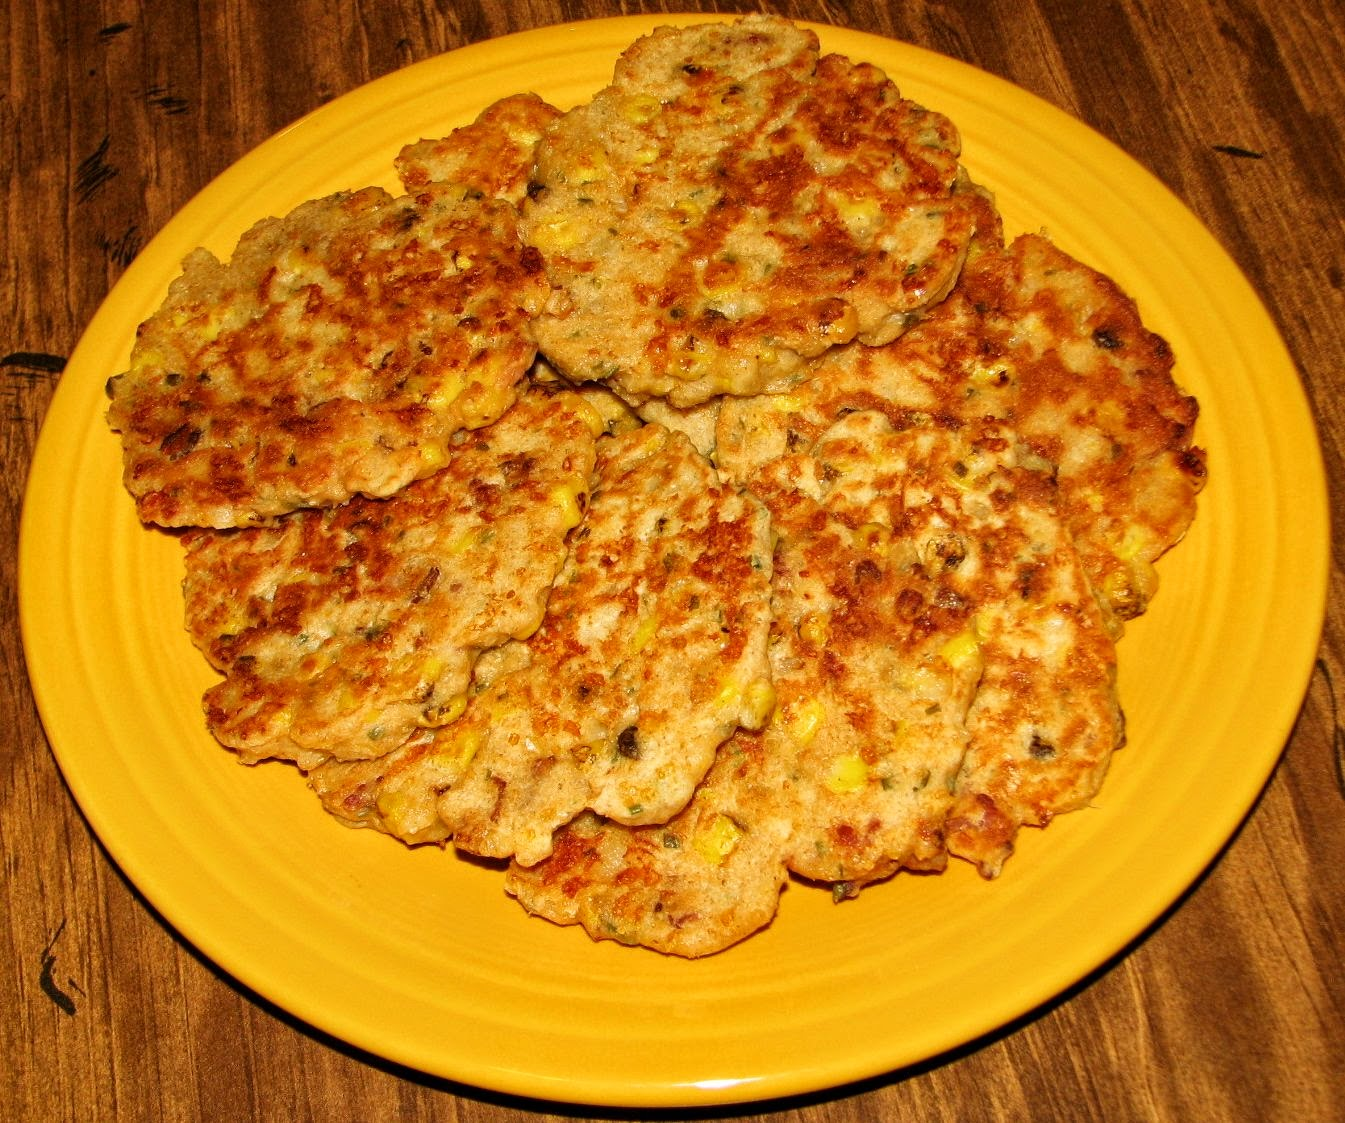 Shel's Kitchen: Bacon and Corn Griddle Cakes